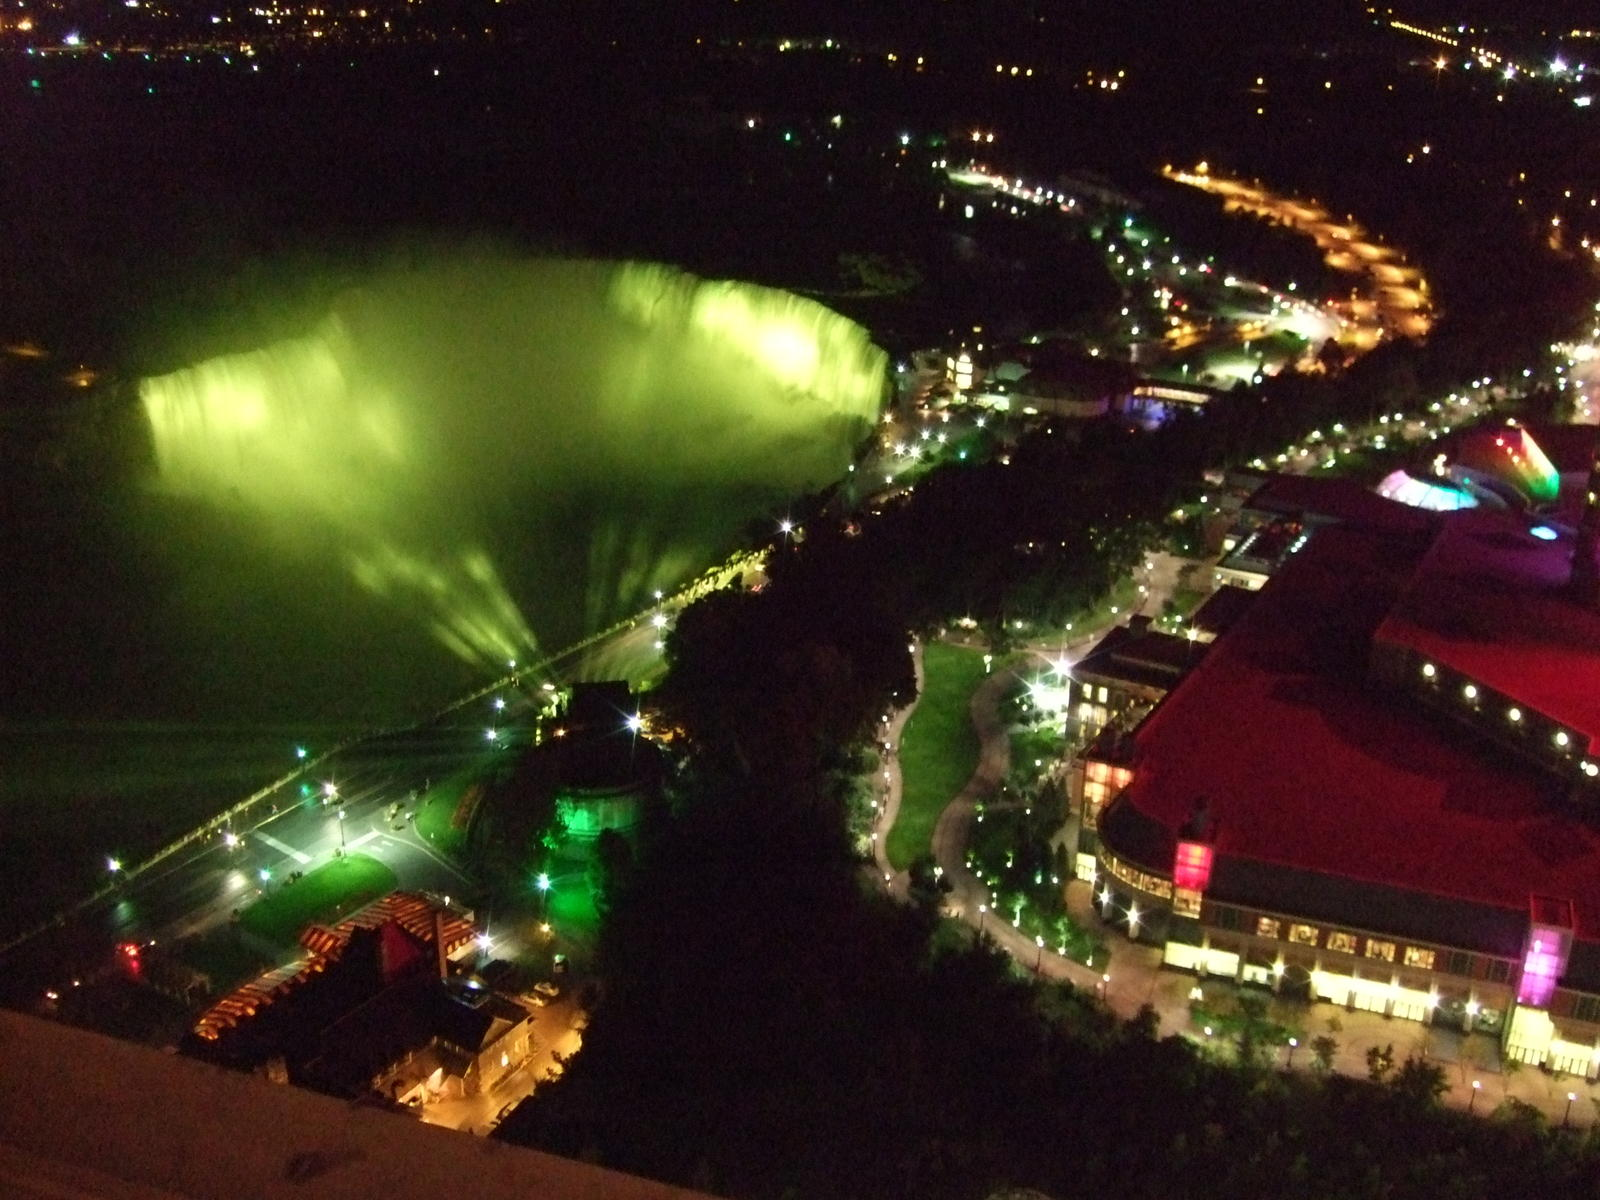 Name: DSCF5286.jpg Views: 220 Size: 226.4 KB Description: The mighty horse Shoe falls at night from the tower.